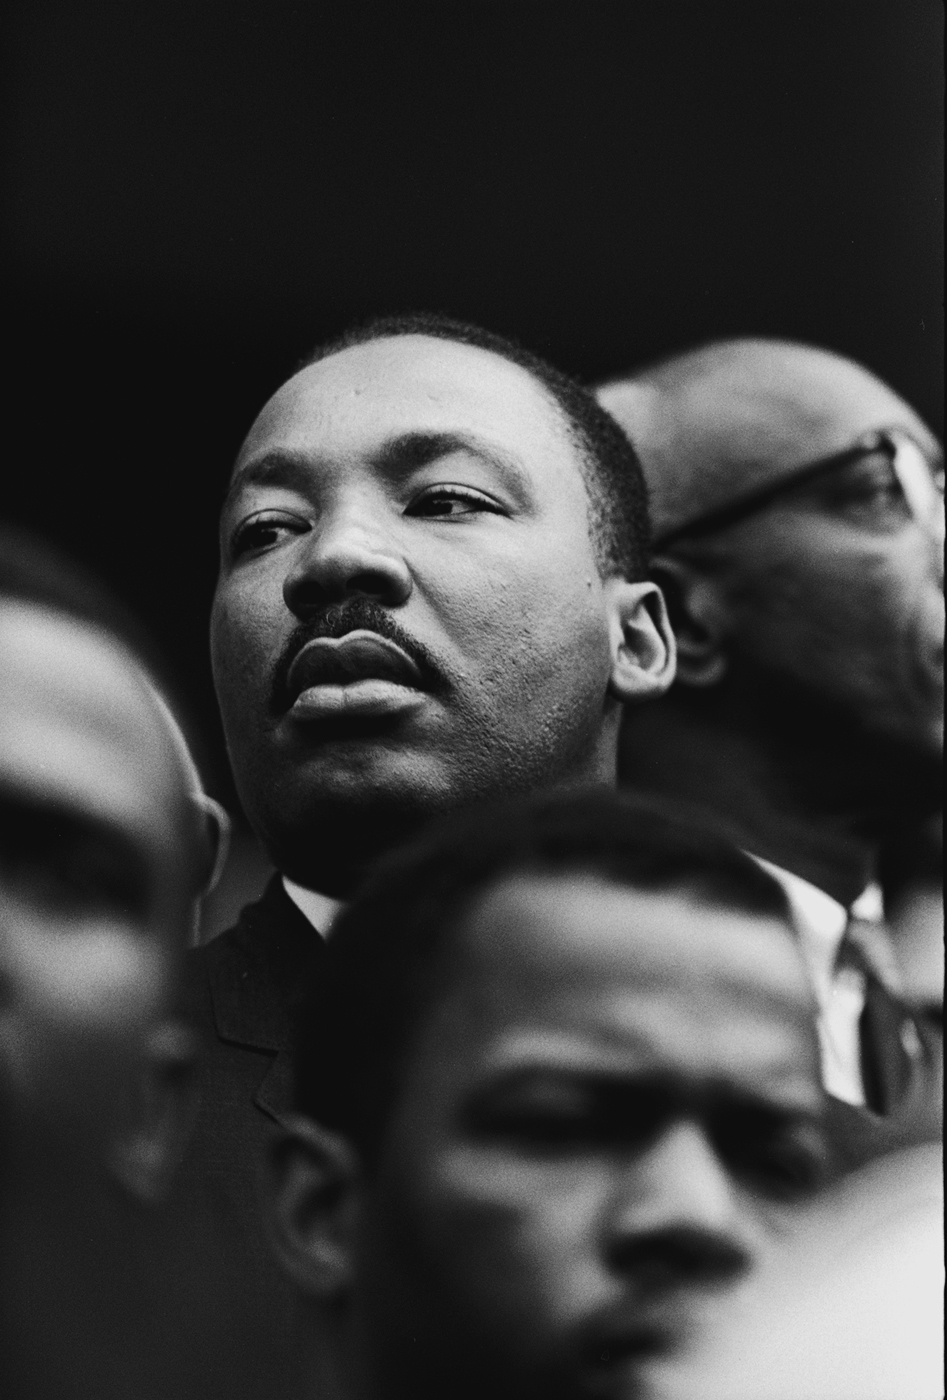 35 Martin Luther King Jr - Selma.jpg